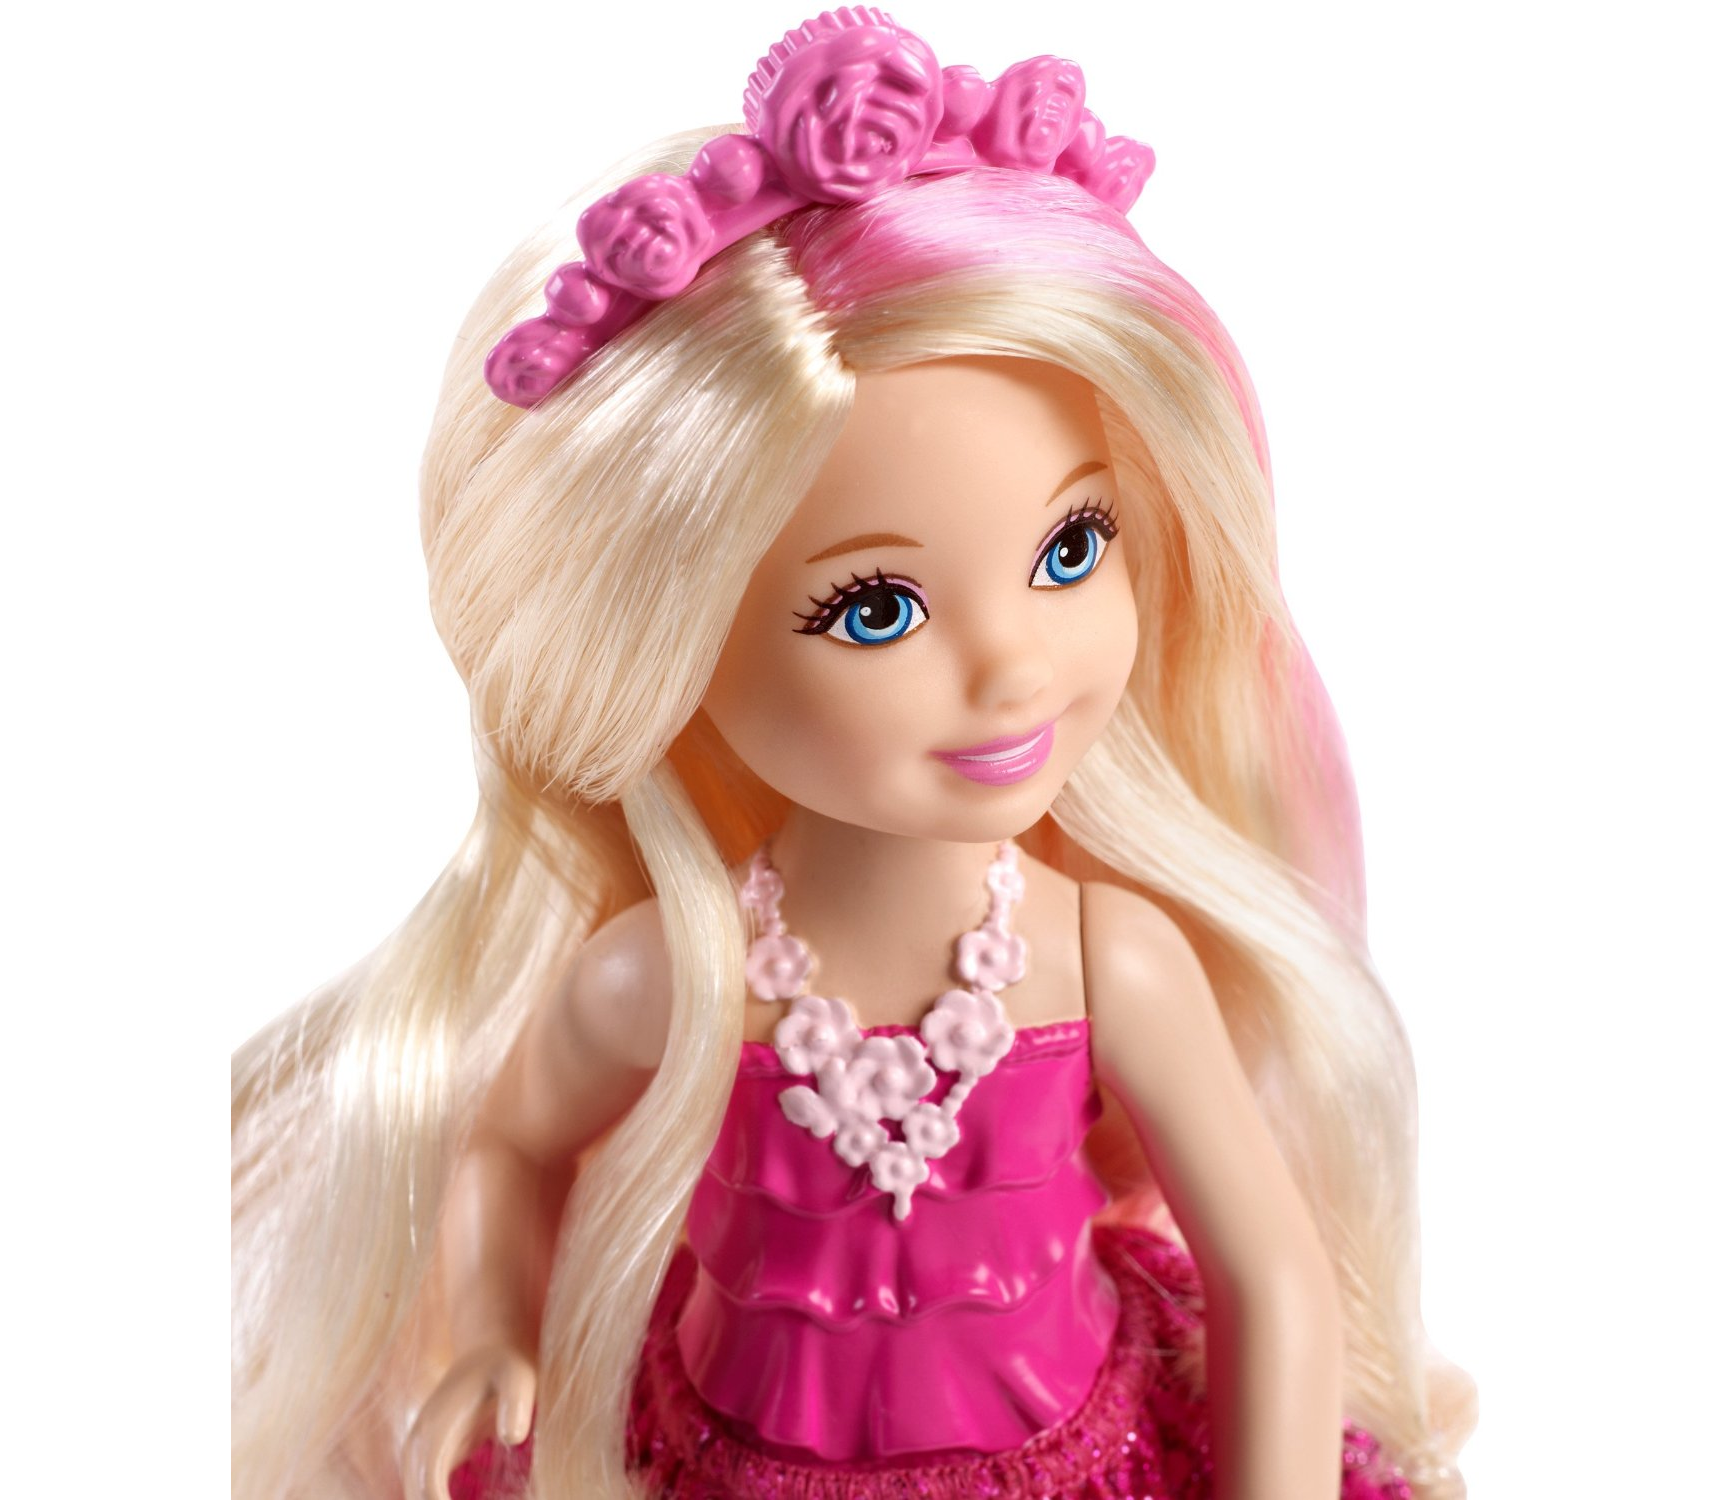 Toy Doll Png Free Toy Doll Png Transparent Images 83947 Pngio